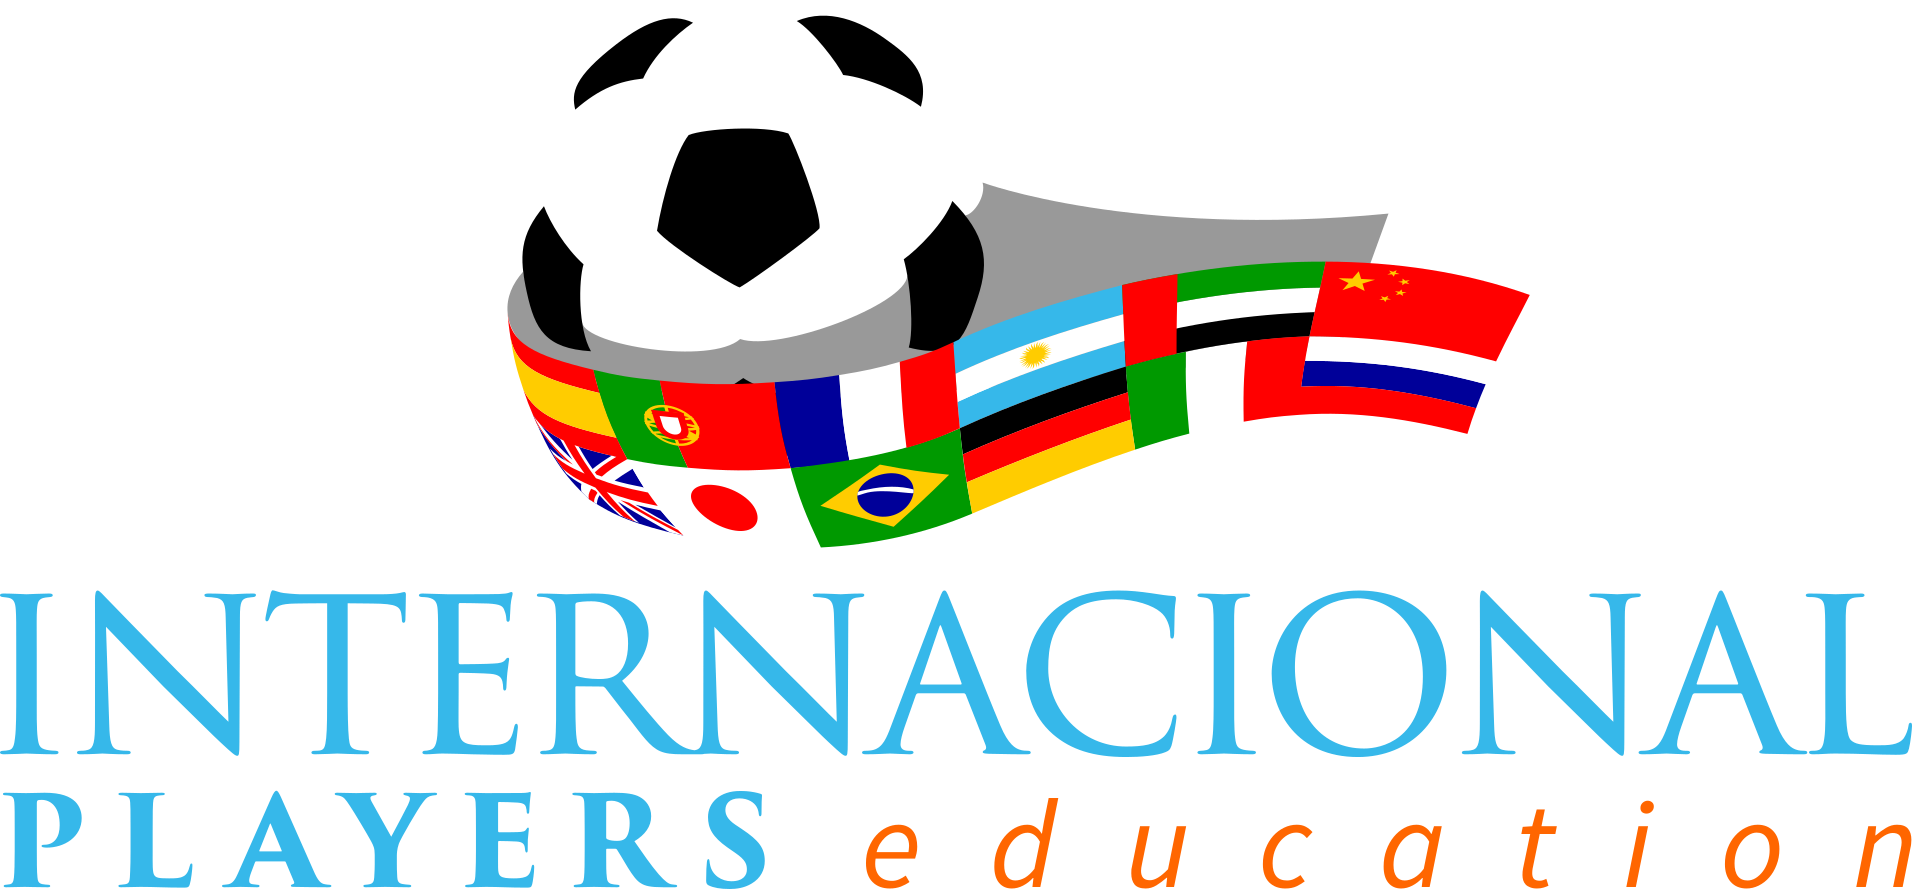 www.intenacionalplayers.es